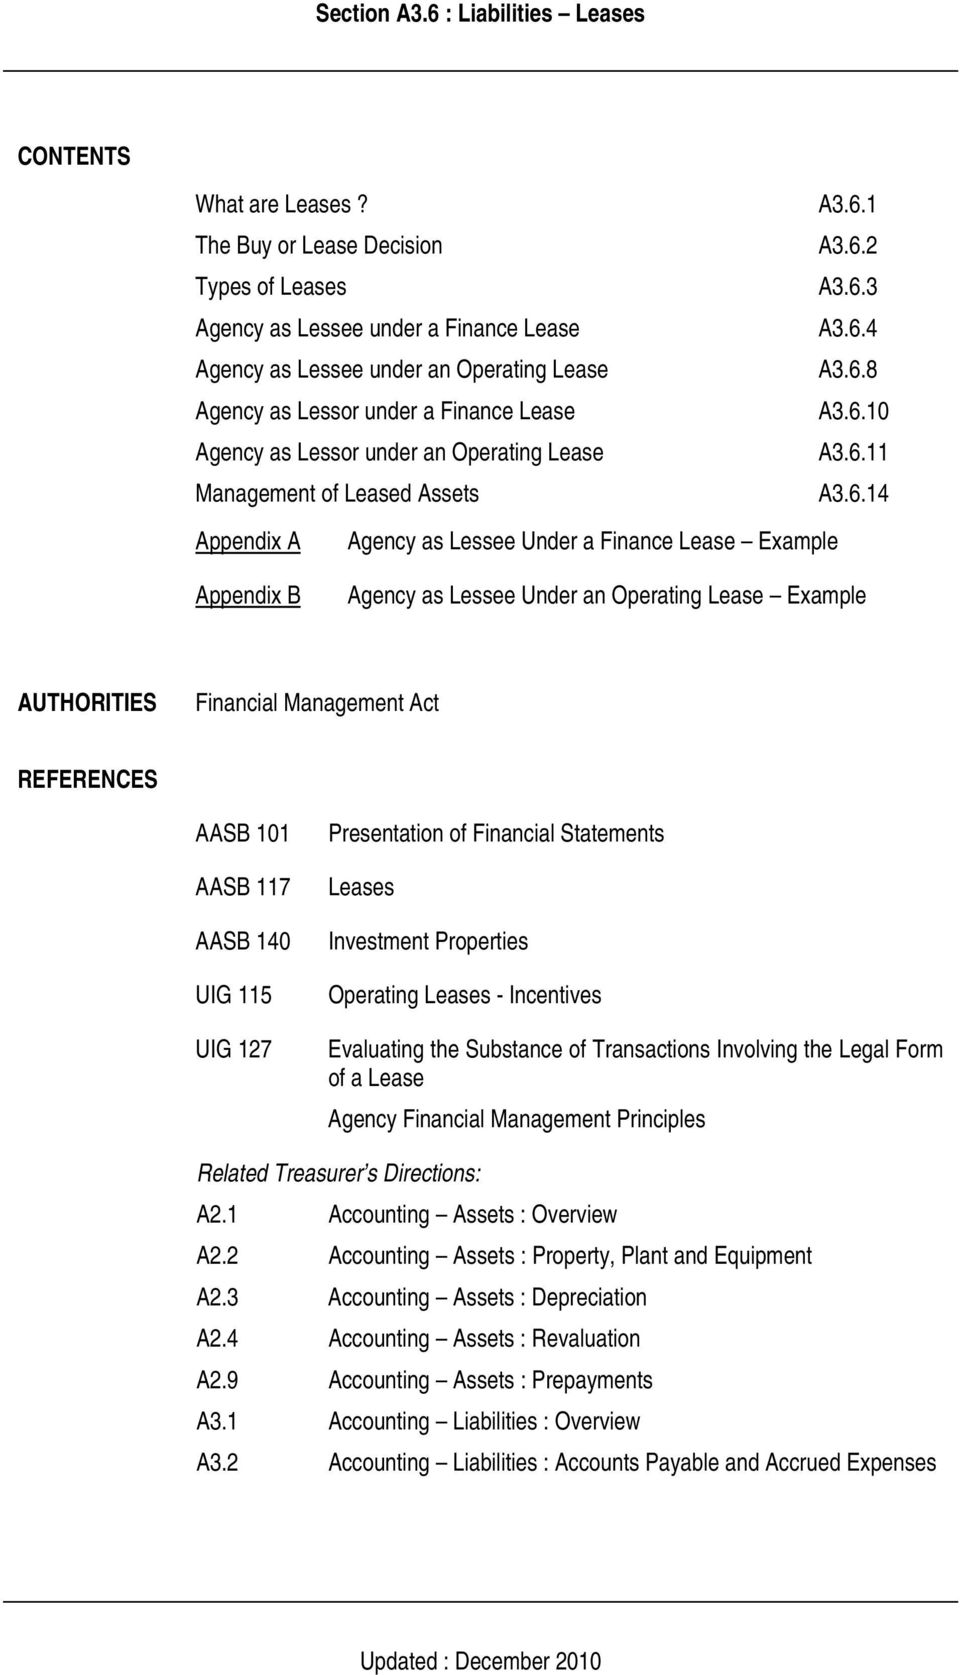 Lease Example AUTHORITIES Financial Management Act REFERENCES AASB 101 AASB 117 AASB 140 UIG 115 UIG 127 Presentation of Financial Statements Leases Investment Properties Operating Leases -